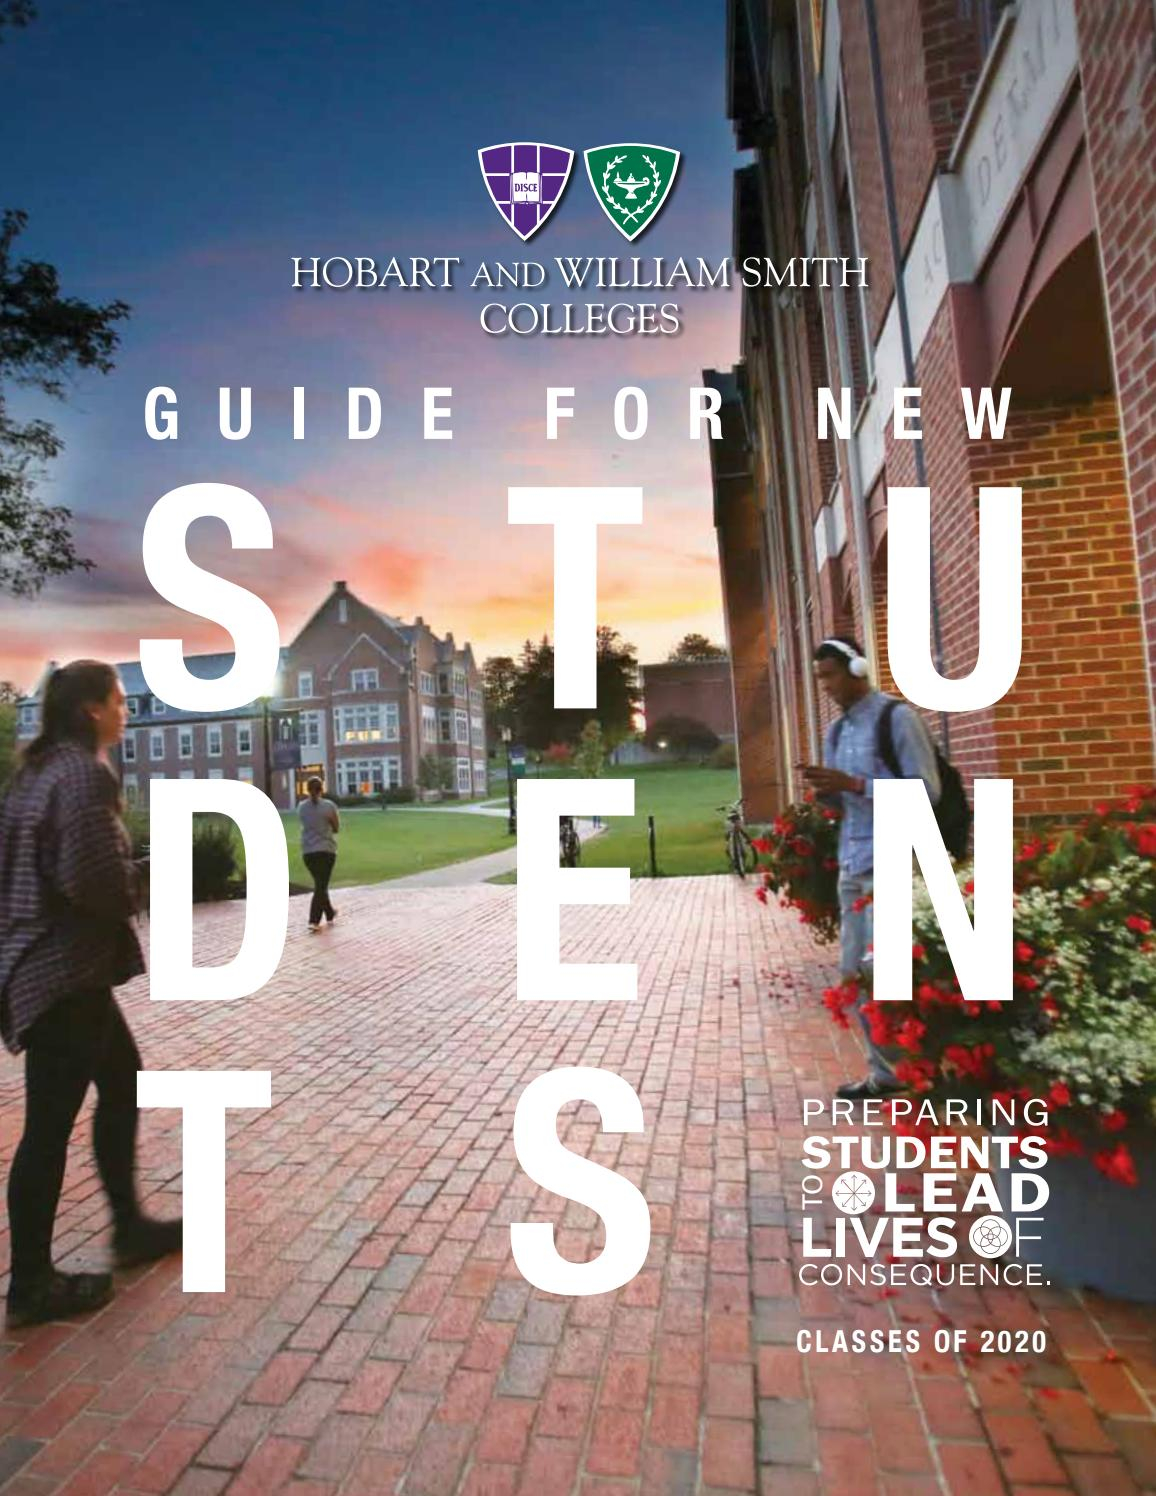 Student Guide 2016Hobart And William Smith Colleges – Issuu Pertaining To Hobart William Smith School Calendar